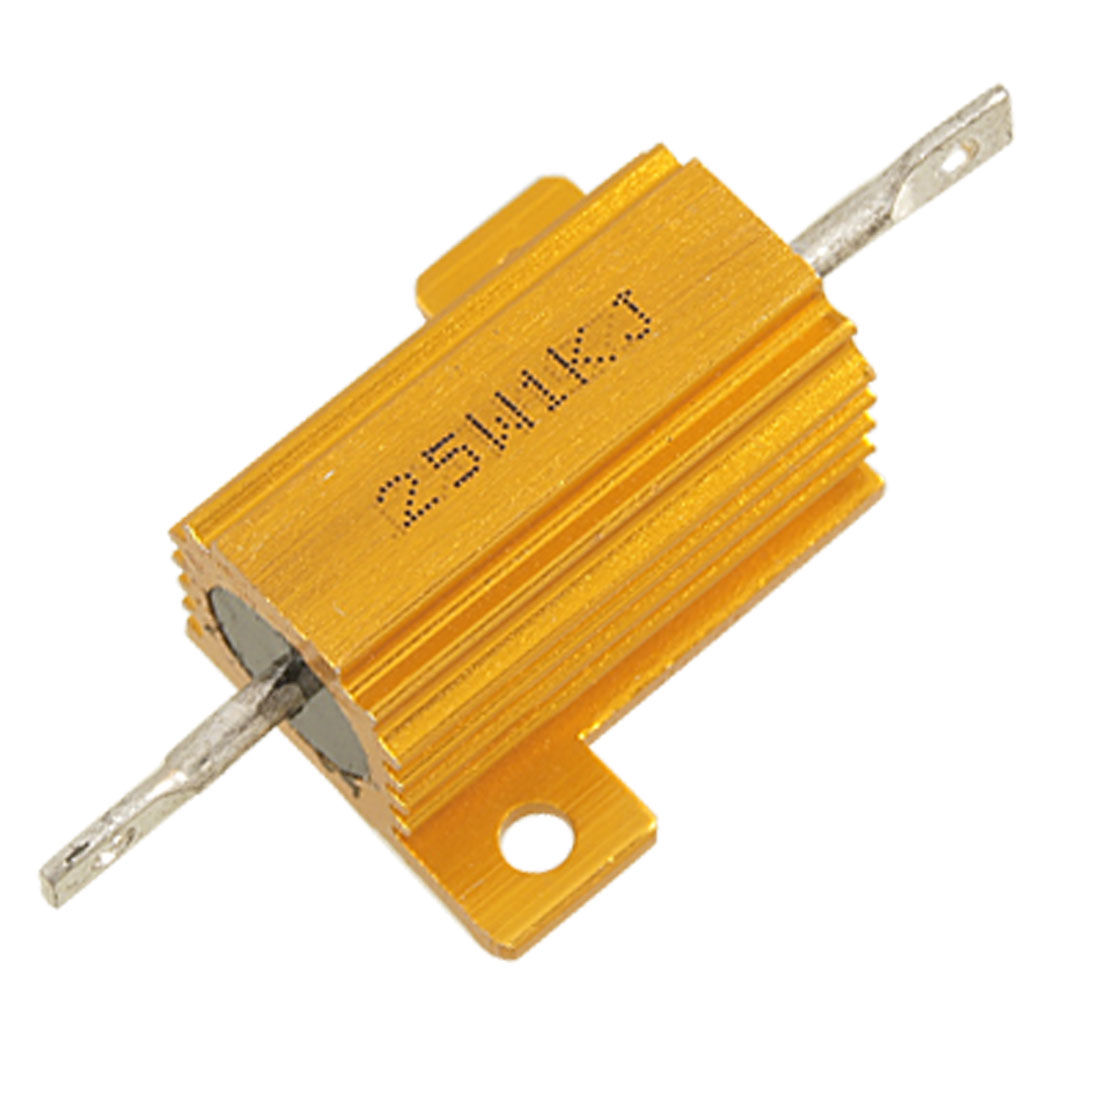 25W 1K Ohm 5% Chassis Mounted Aluminum Housed Wirewound Resistor